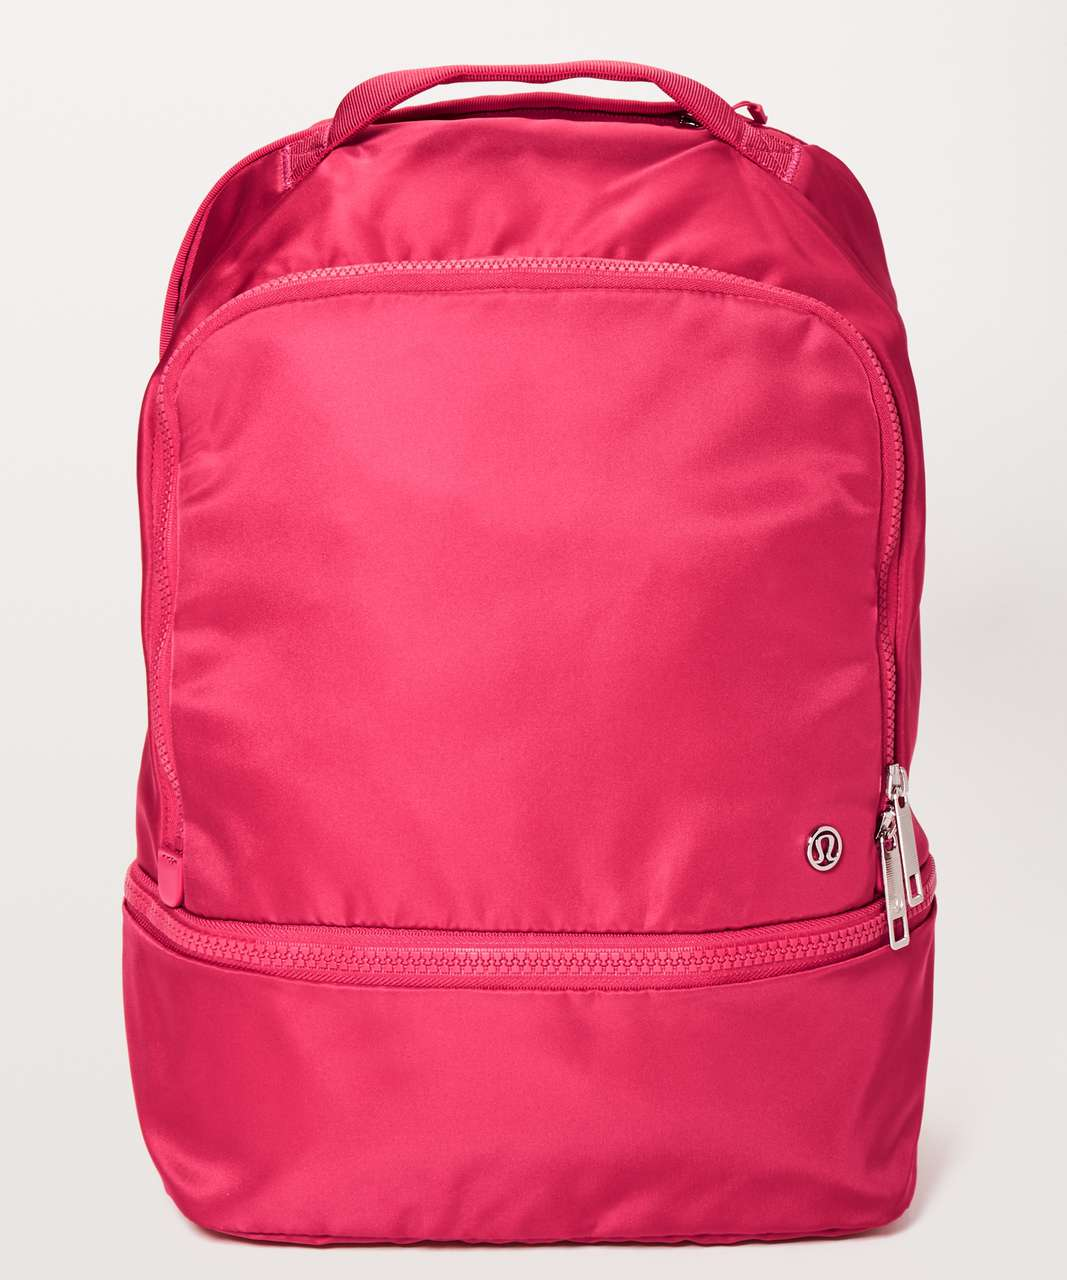 Lululemon City Adventurer Backpack *17L - Fuchsia Pink